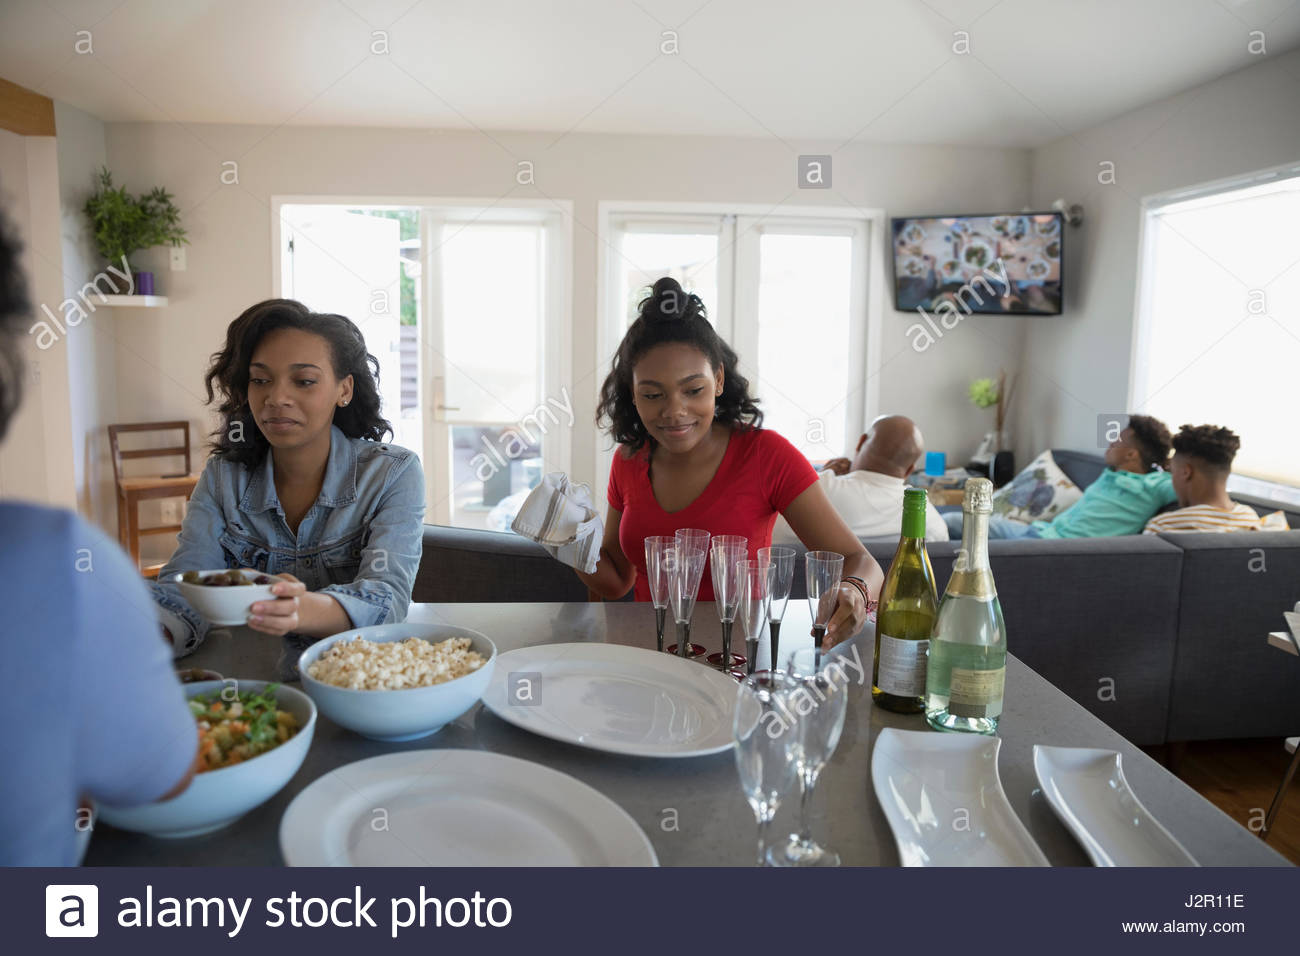 African American teenage sisters eating in kitchen - Stock Image